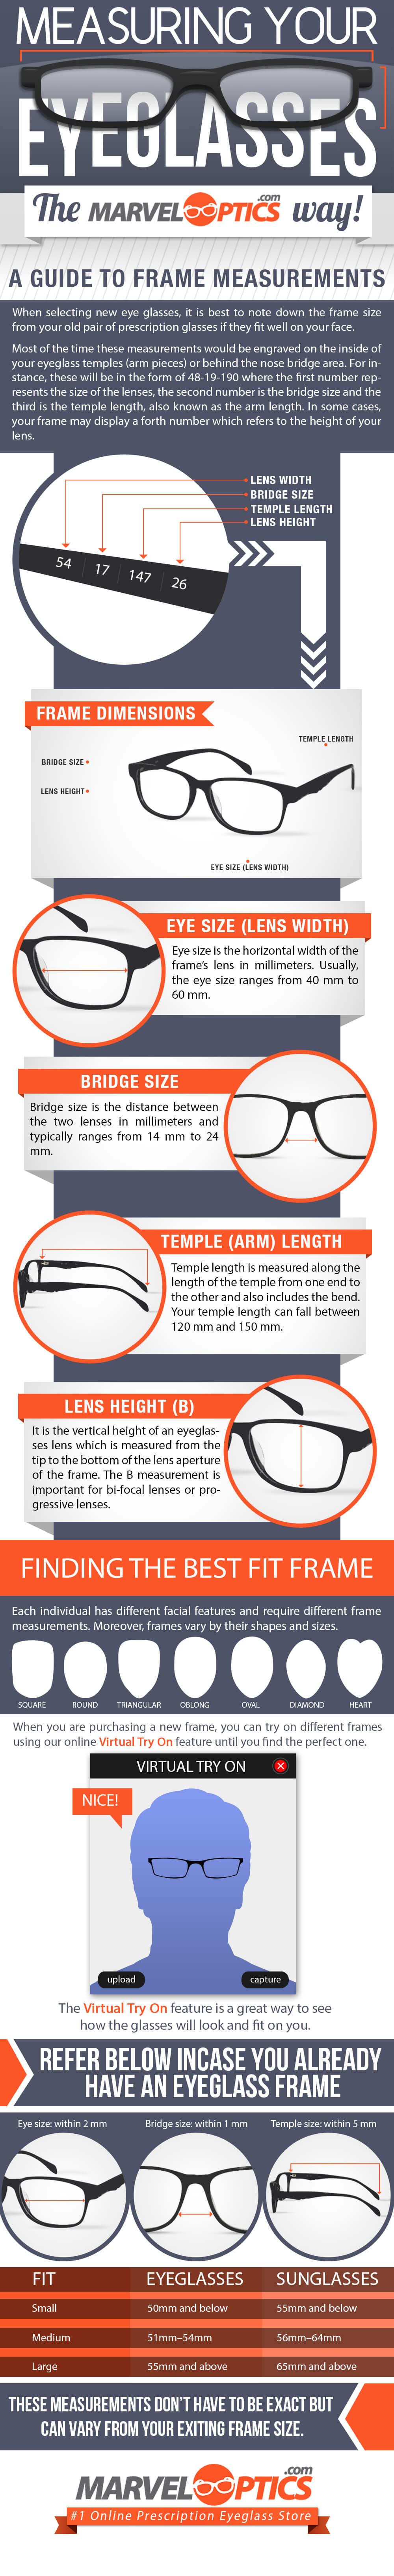 measuring-eyeglasses-infographic